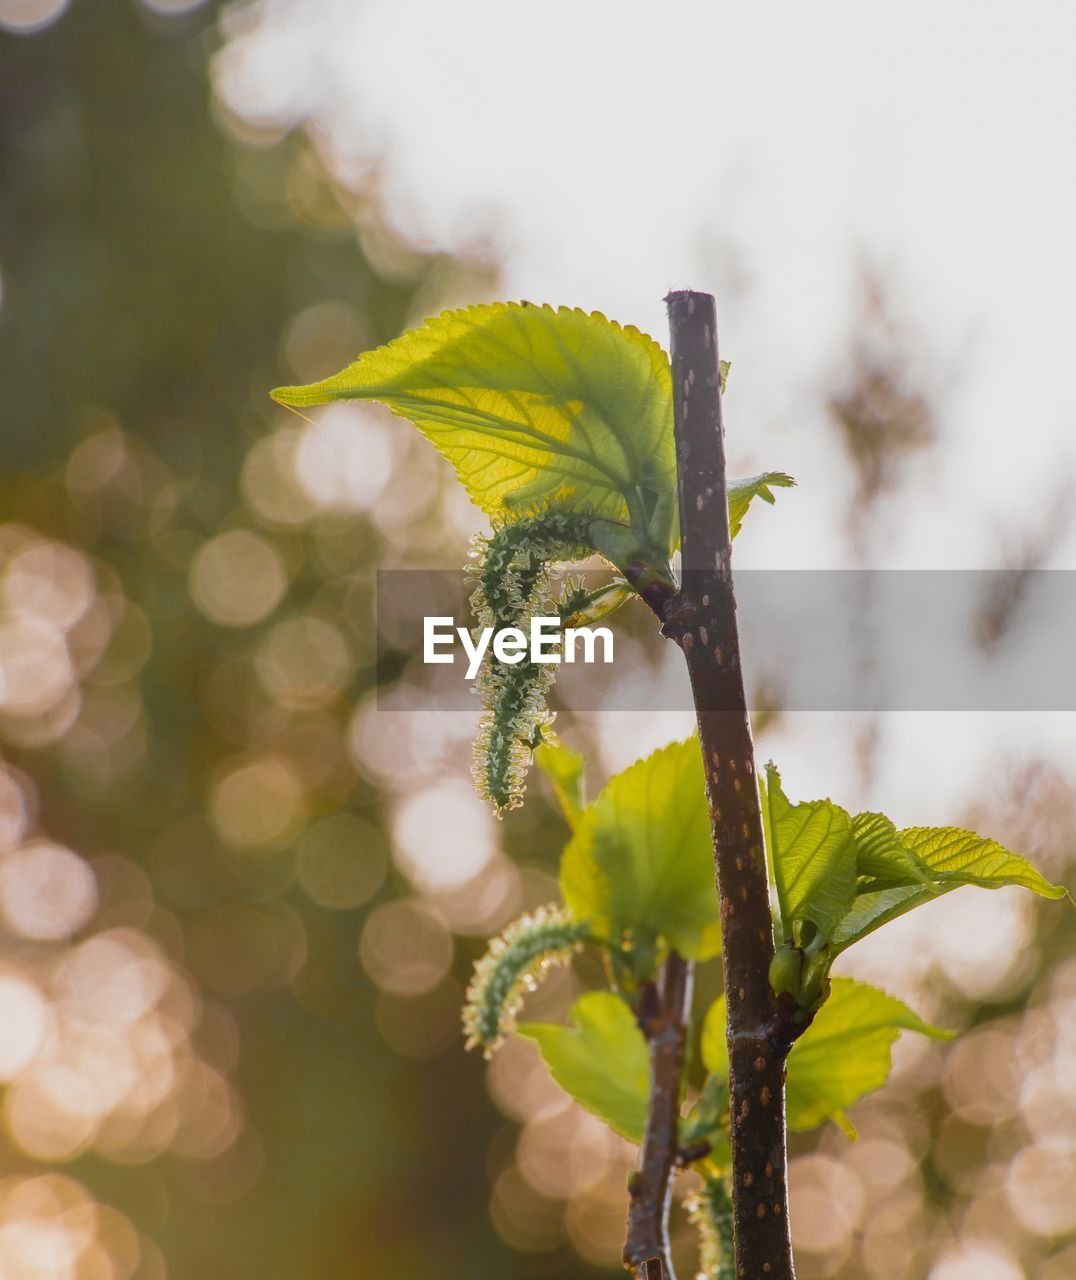 plant, growth, beauty in nature, close-up, nature, green color, yellow, no people, focus on foreground, vulnerability, fragility, flower, day, flowering plant, selective focus, outdoors, plant stem, plant part, freshness, leaf, flower head, sepal